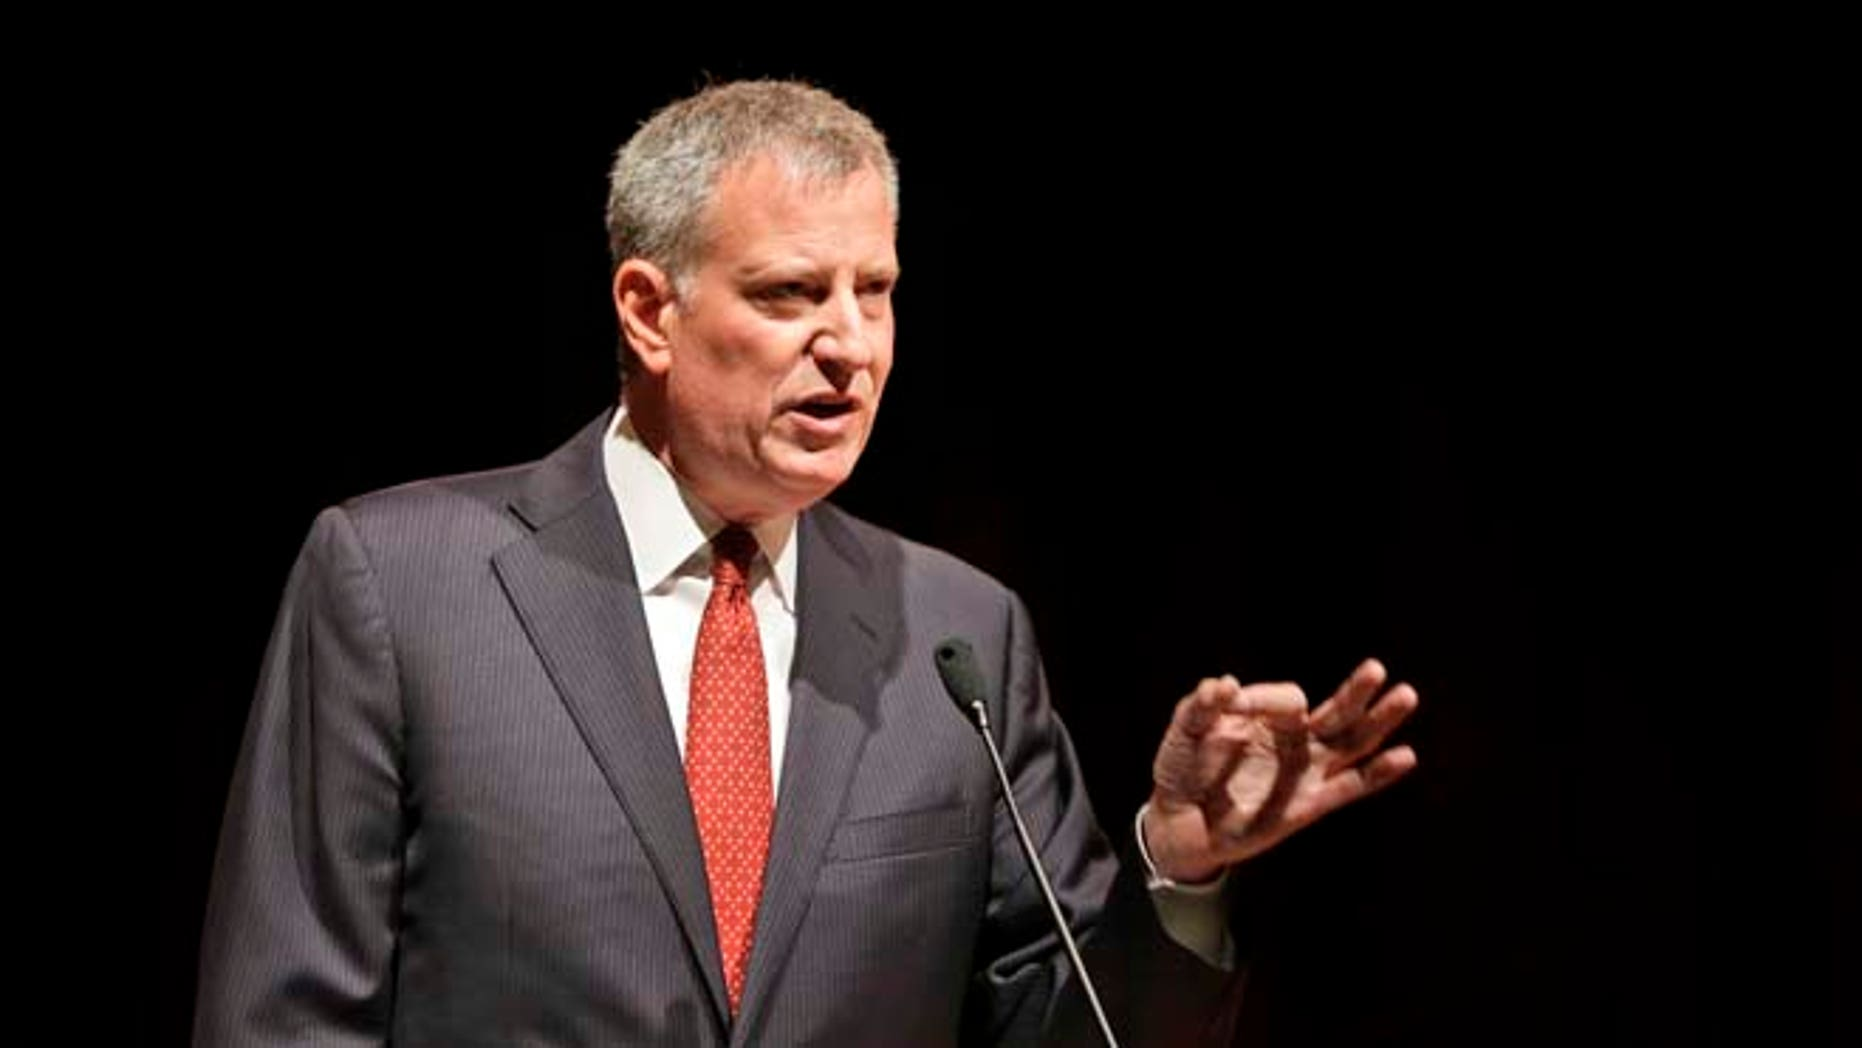 New York City Mayor Bill de Blasio speaks to the graduates of the Boys and Girls High School in the Bedford-Stuyvesant section of Brooklyn in New York, Thursday, June 25, 2015. The New York state legislative session lurched to an end Tuesday, shunting sweeping changes to the side while largely preserving the status quo, an outcome that yielded scant victories and much frustration for de Blasio. (AP Photo/Seth Wenig)